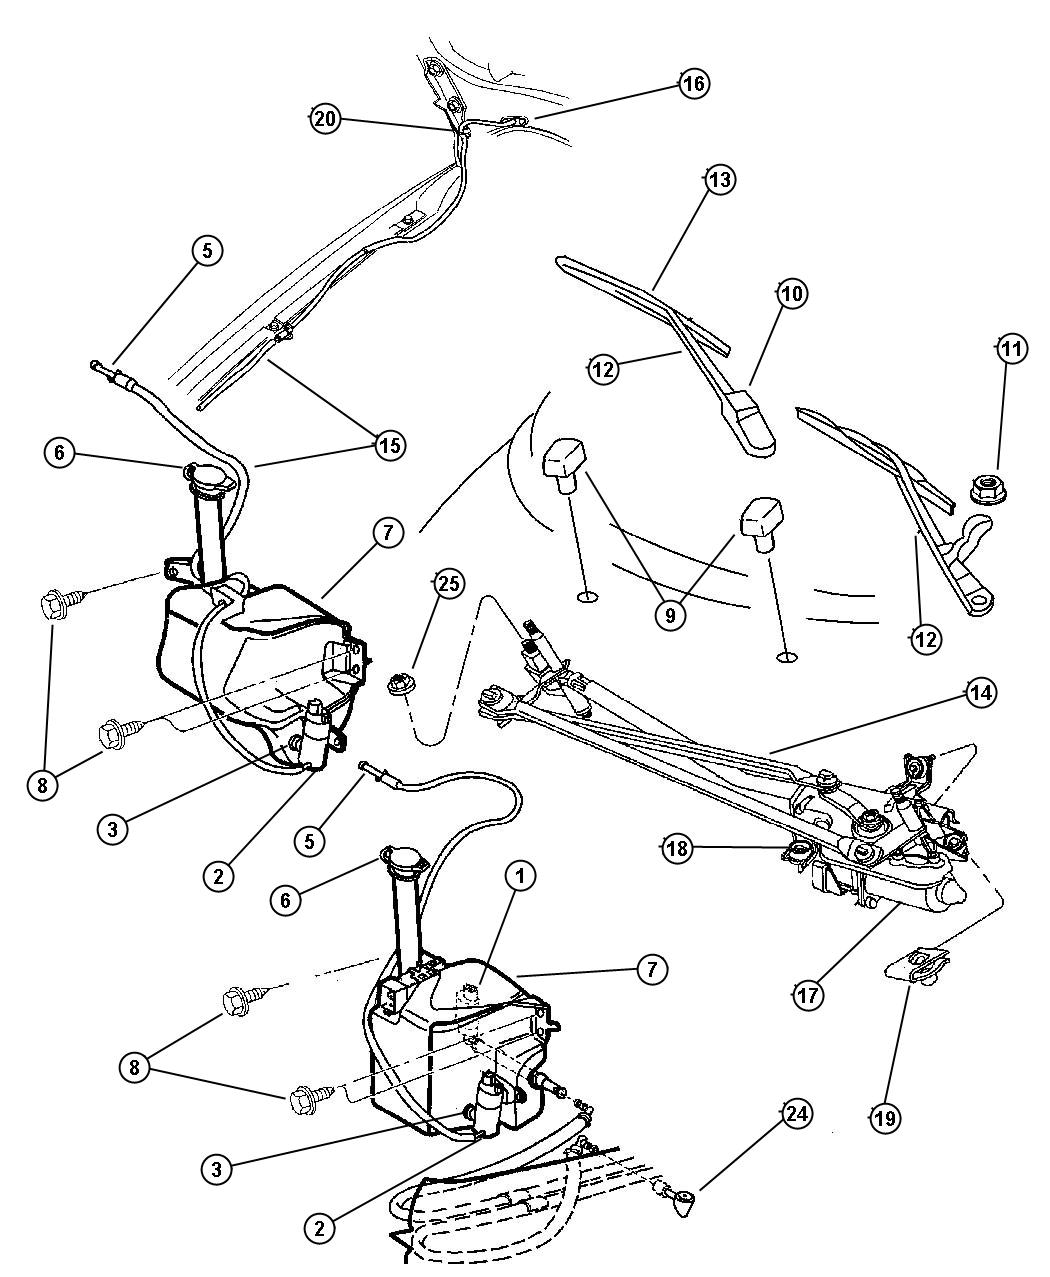 hight resolution of service manual 1997 plymouth breeze windshield washer